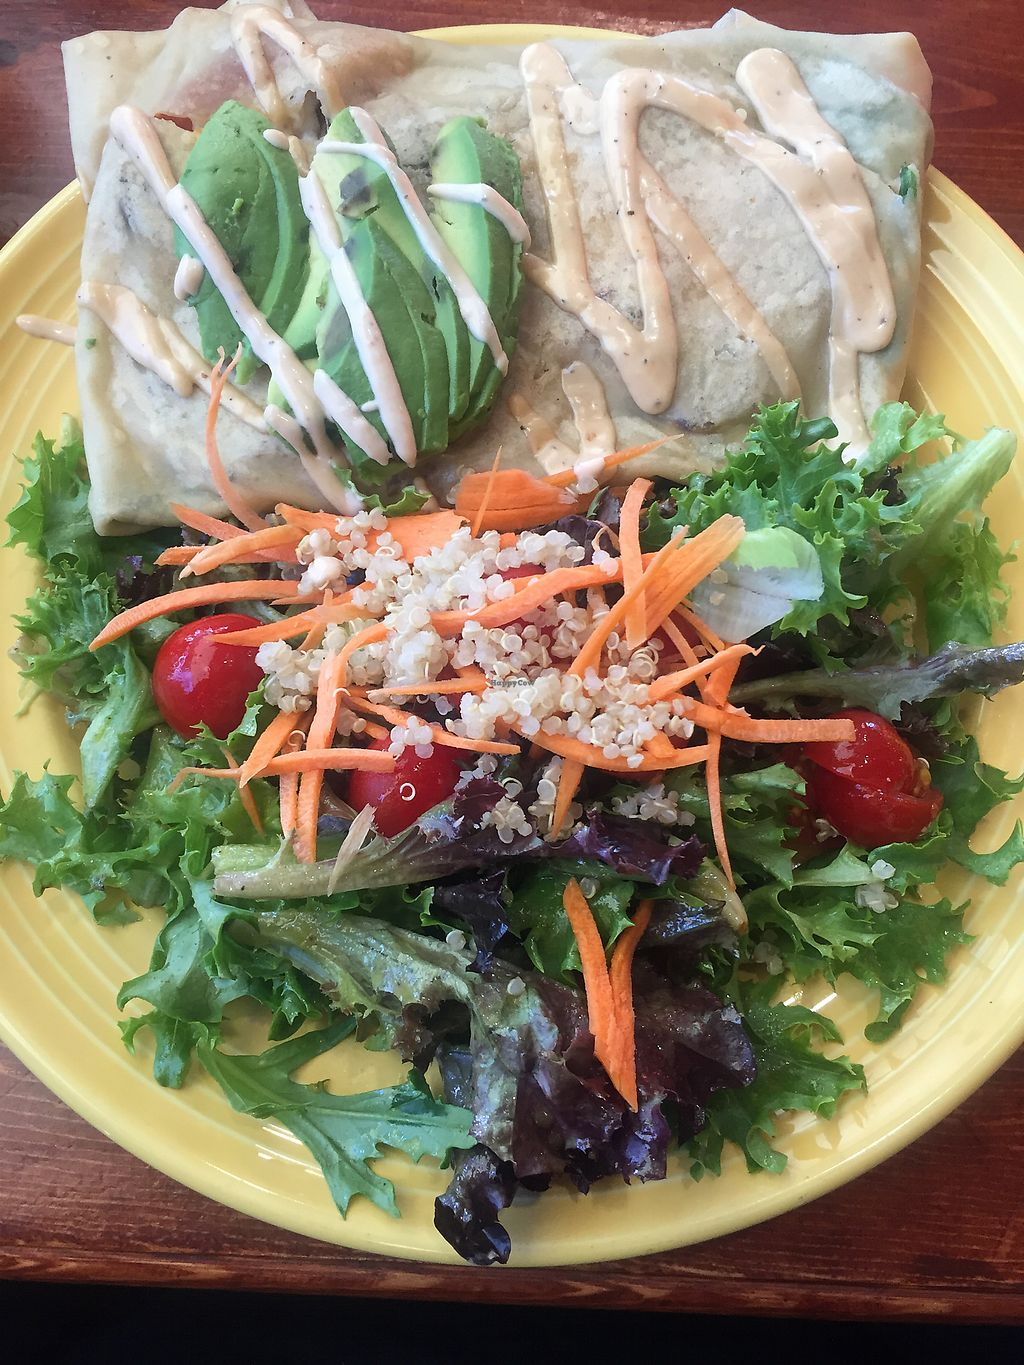 "Photo of The Grain Cafe  by <a href=""/members/profile/R-MV"">R-MV</a> <br/>Patty Crepe and Salad  <br/> September 21, 2017  - <a href='/contact/abuse/image/89010/306945'>Report</a>"